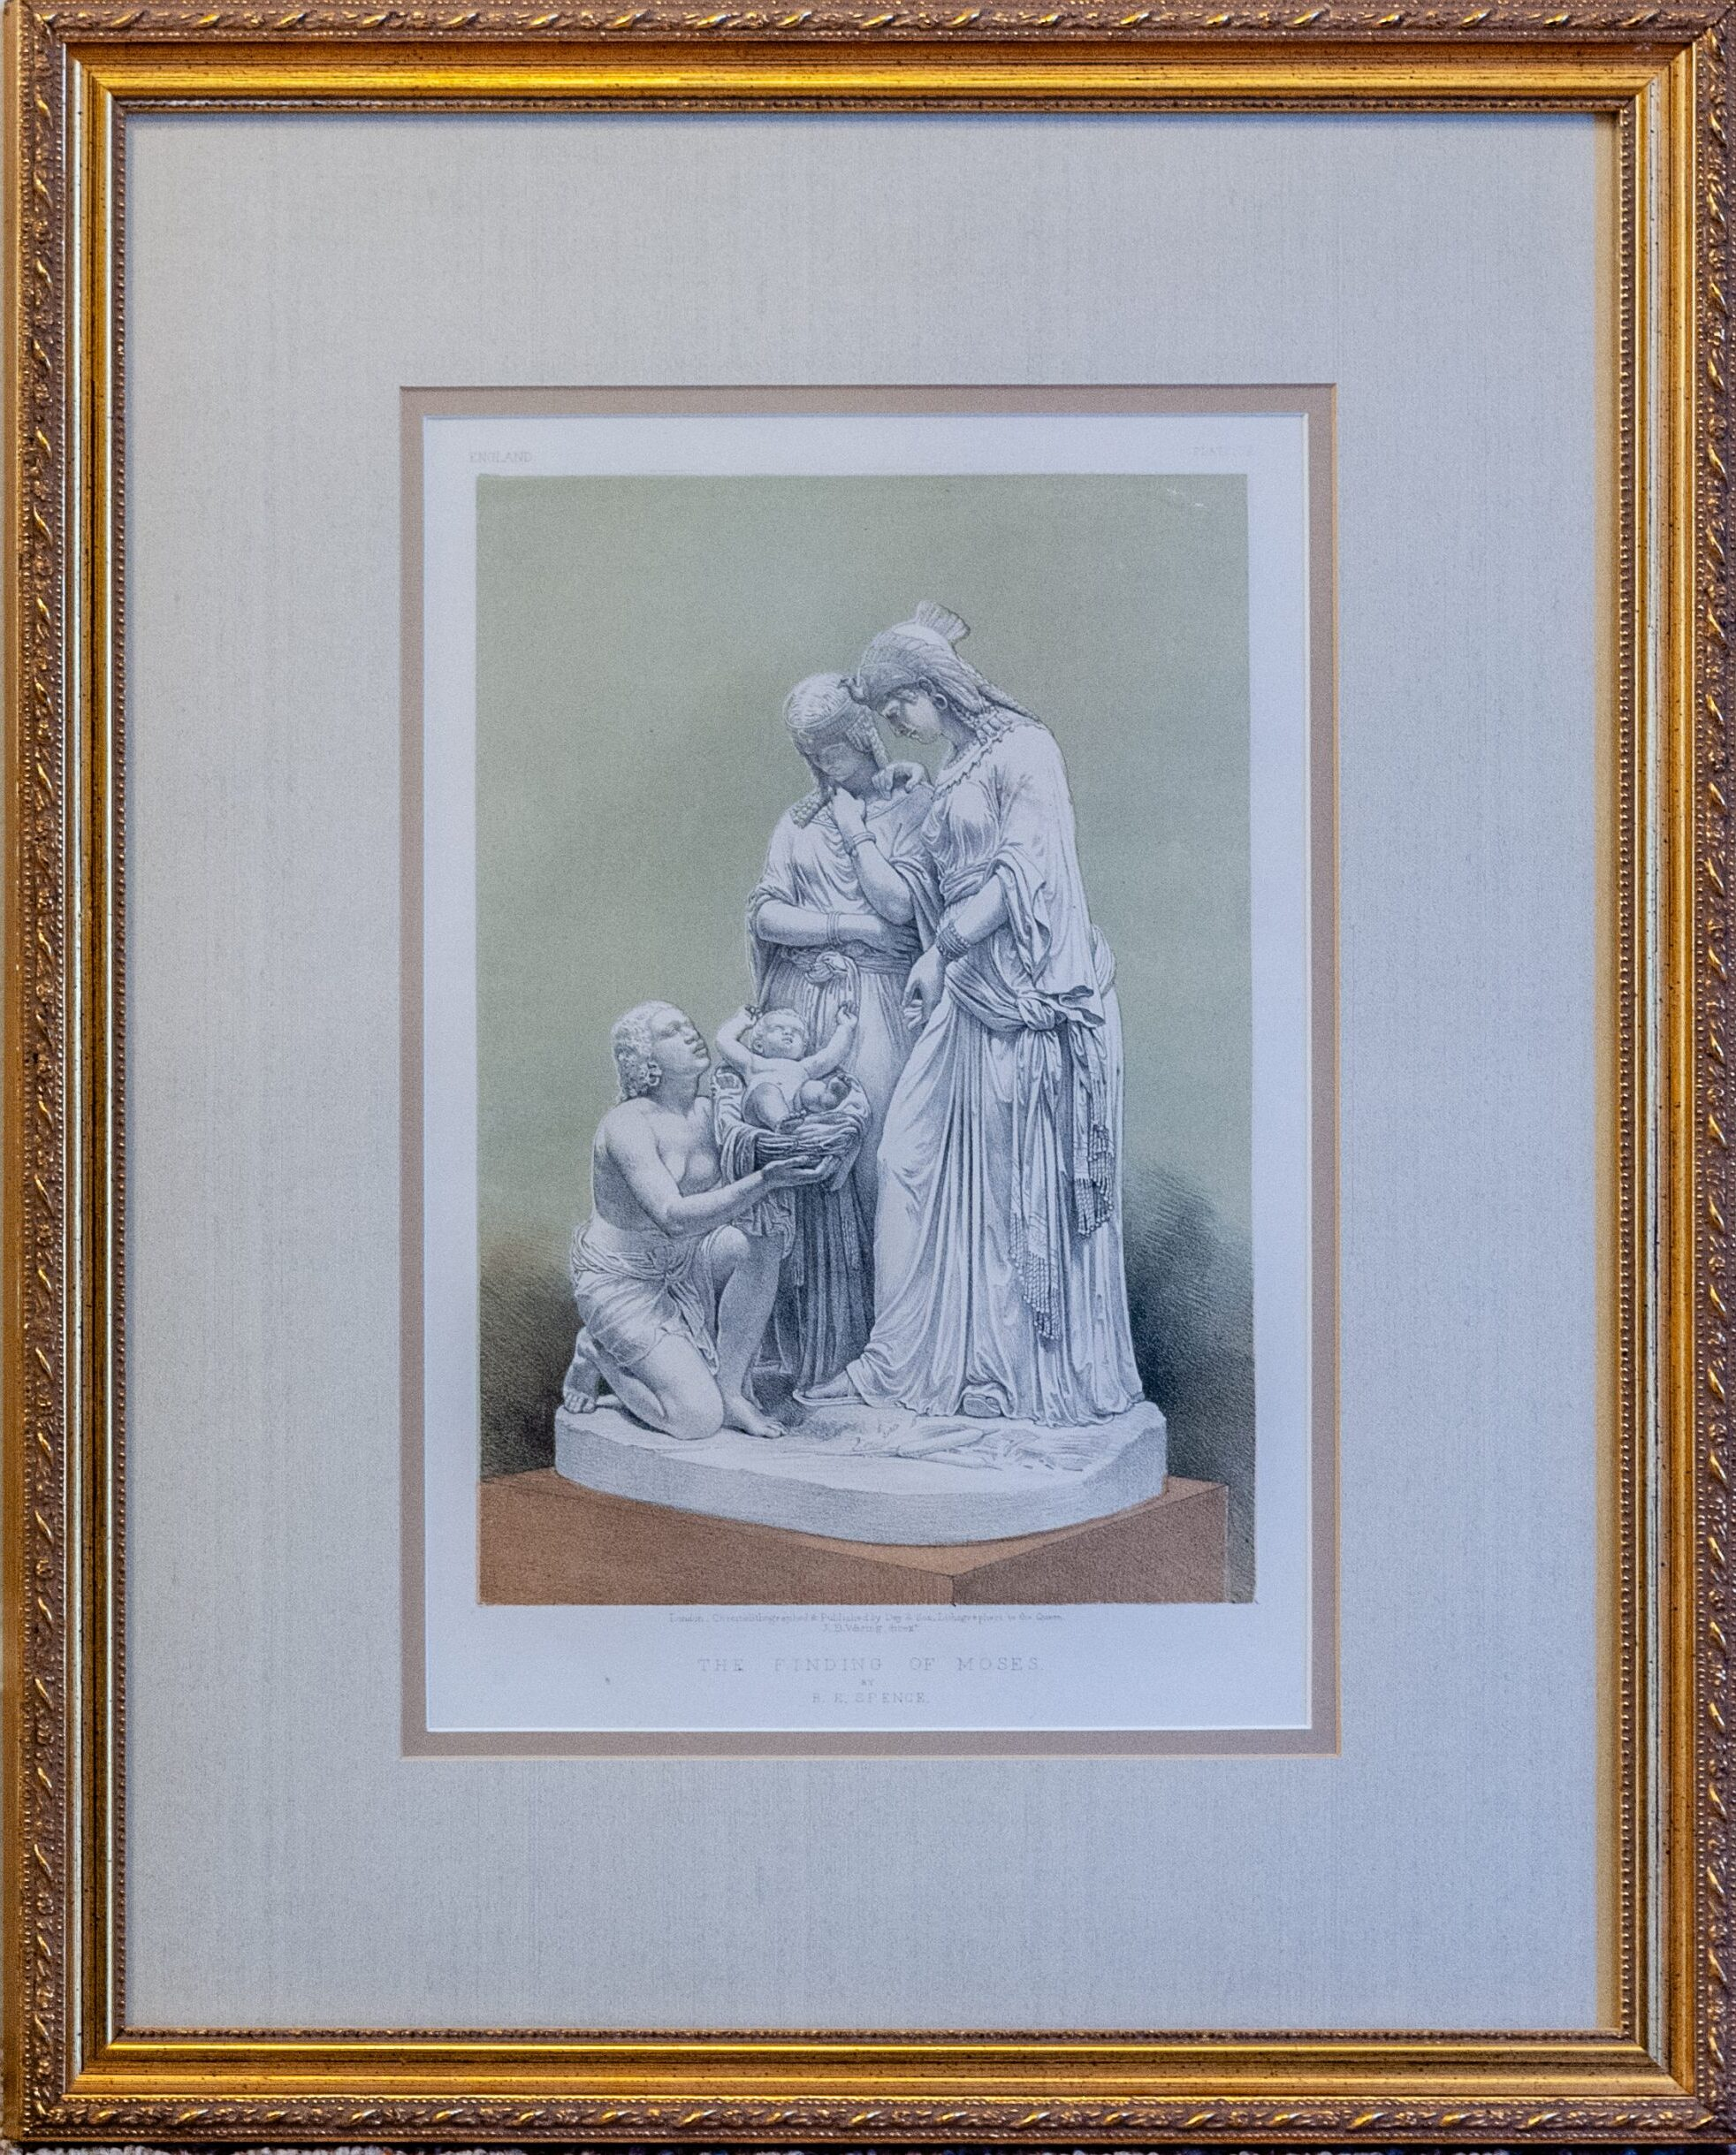 Finding Moses by Benjamin E. Spence 16x20